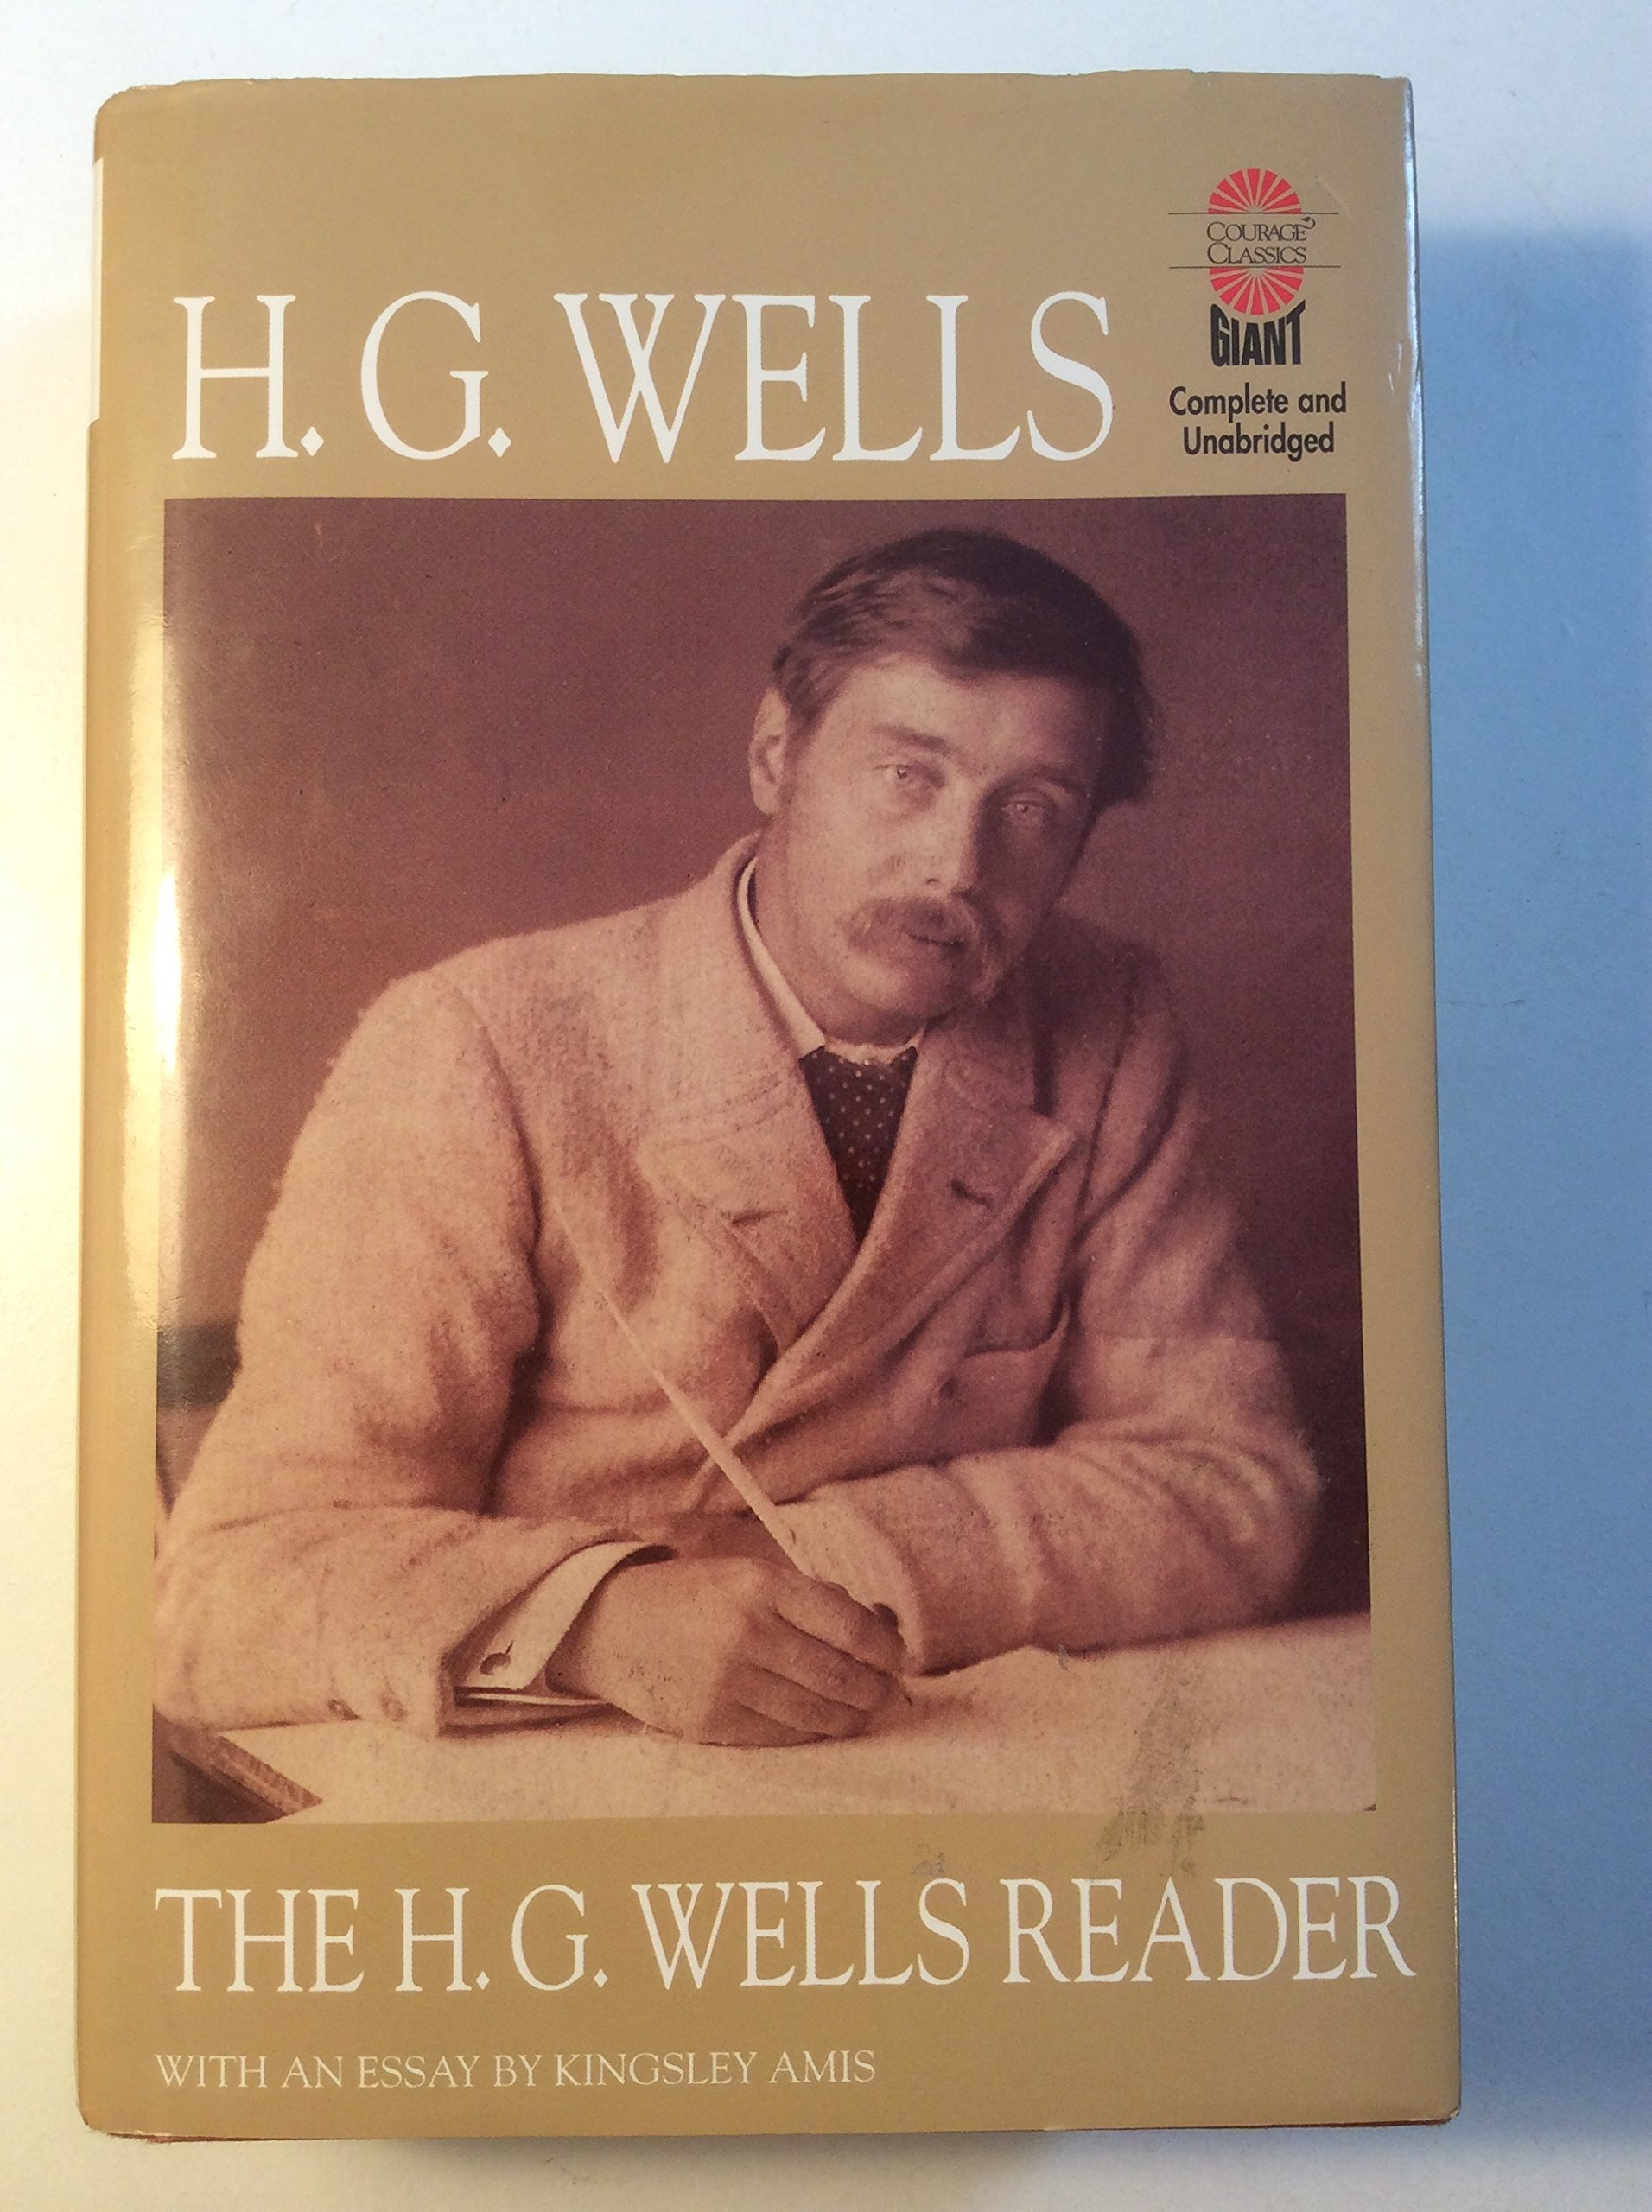 The H.G. Wells Reader